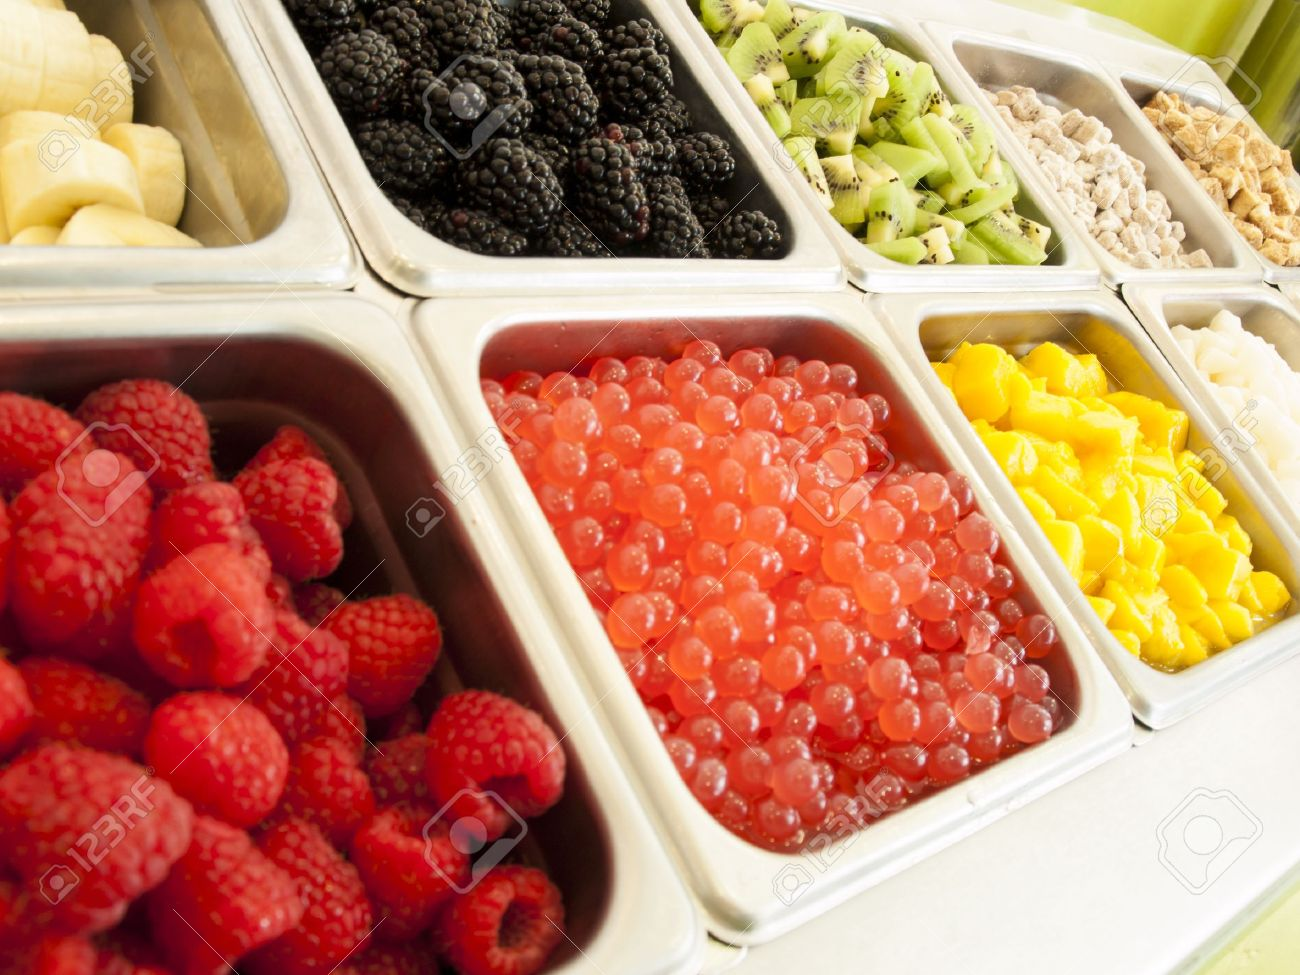 Attrayant Frozen Yogurt Toppings Bar. Yogurt Toppings Ranging From Fresh Fruits,  Nuts, Fresh